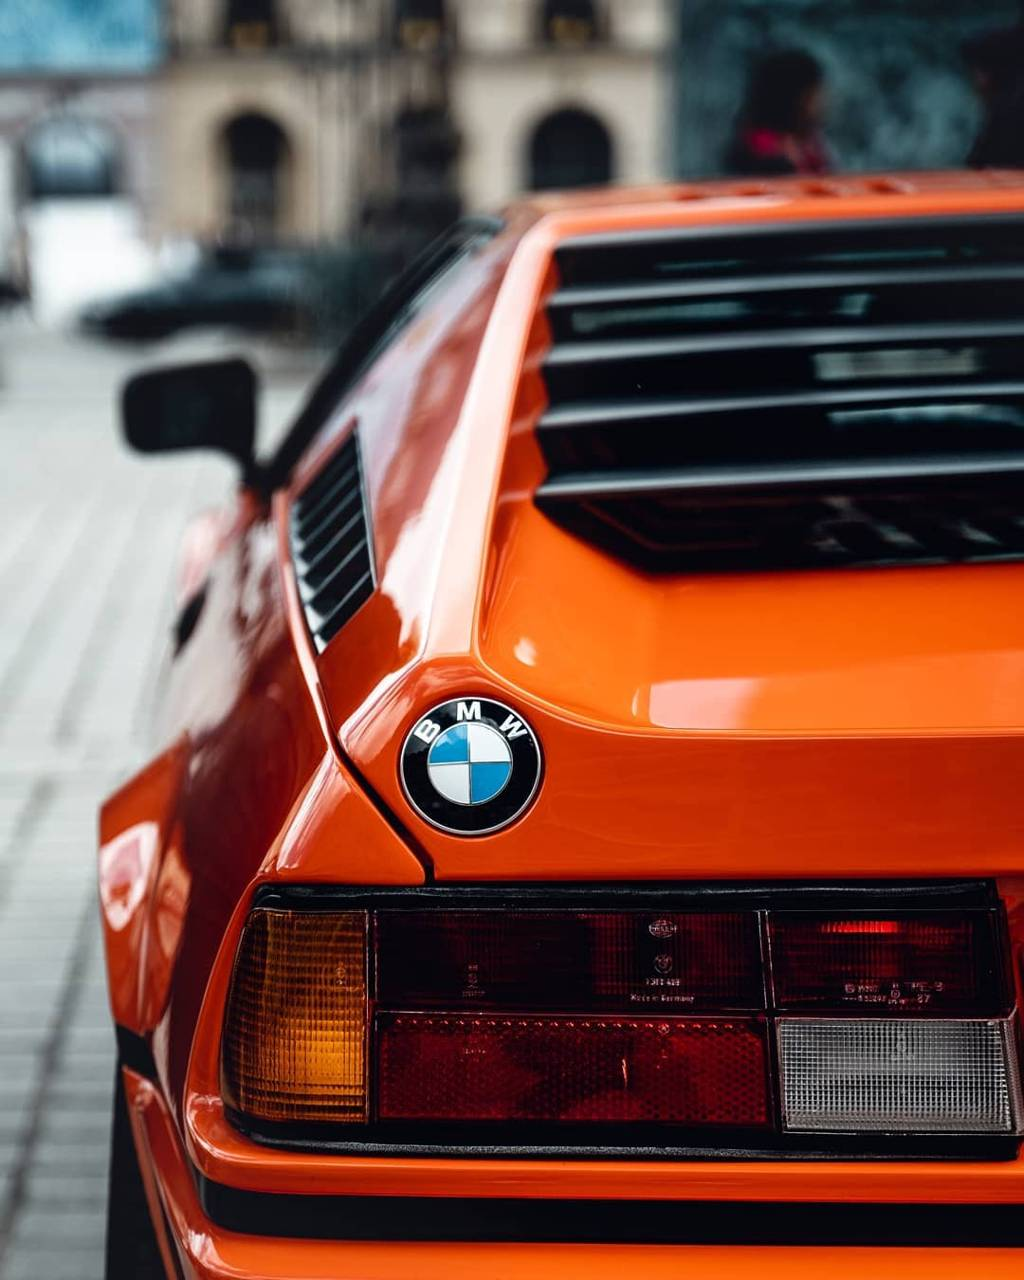 Old Bmw Wallpaper By Wallscars C4 Free On Zedge